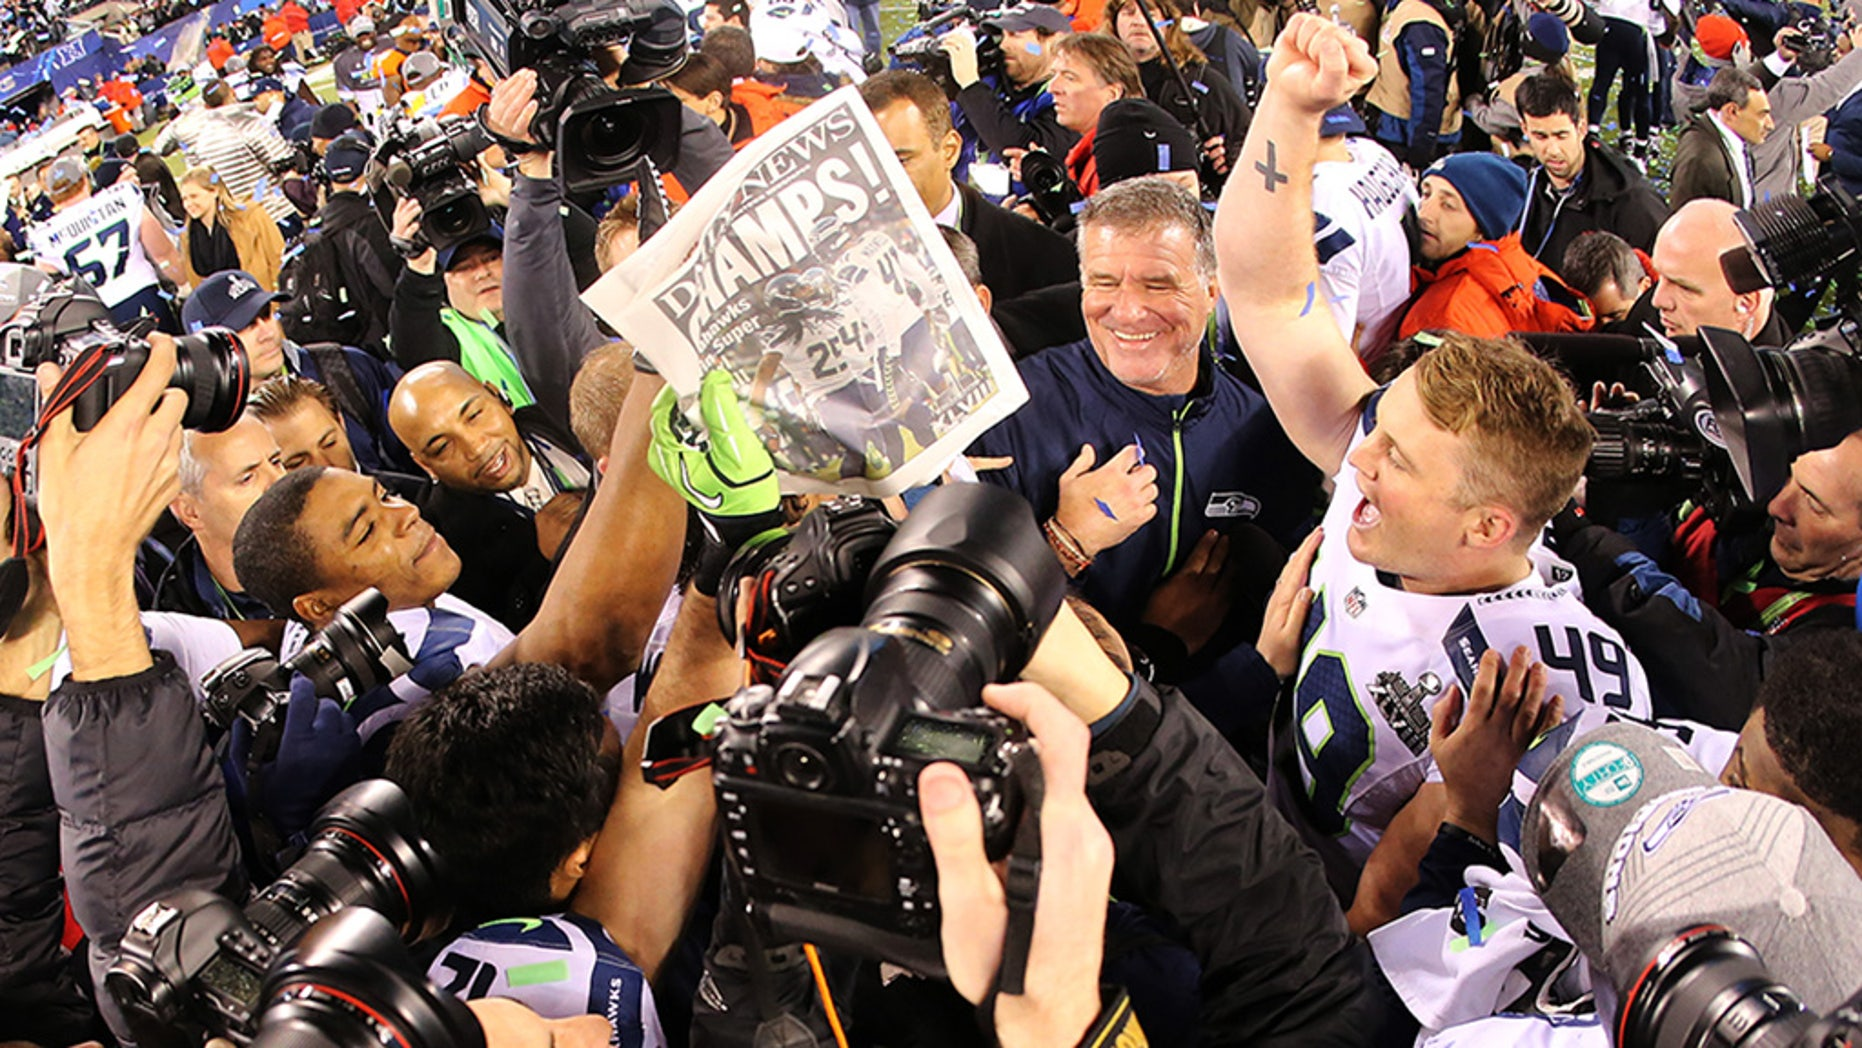 EAST RUTHERFORD, NJ - FEBRUARY 02: Long snapper Clint Gresham #49 of the Seattle Seahawks celebrates with teammates on the field after winning Super Bowl XLVIII at MetLife Stadium on February 2, 2014 in East Rutherford, New Jersey. The Seahawks beat the Broncos 43-8.